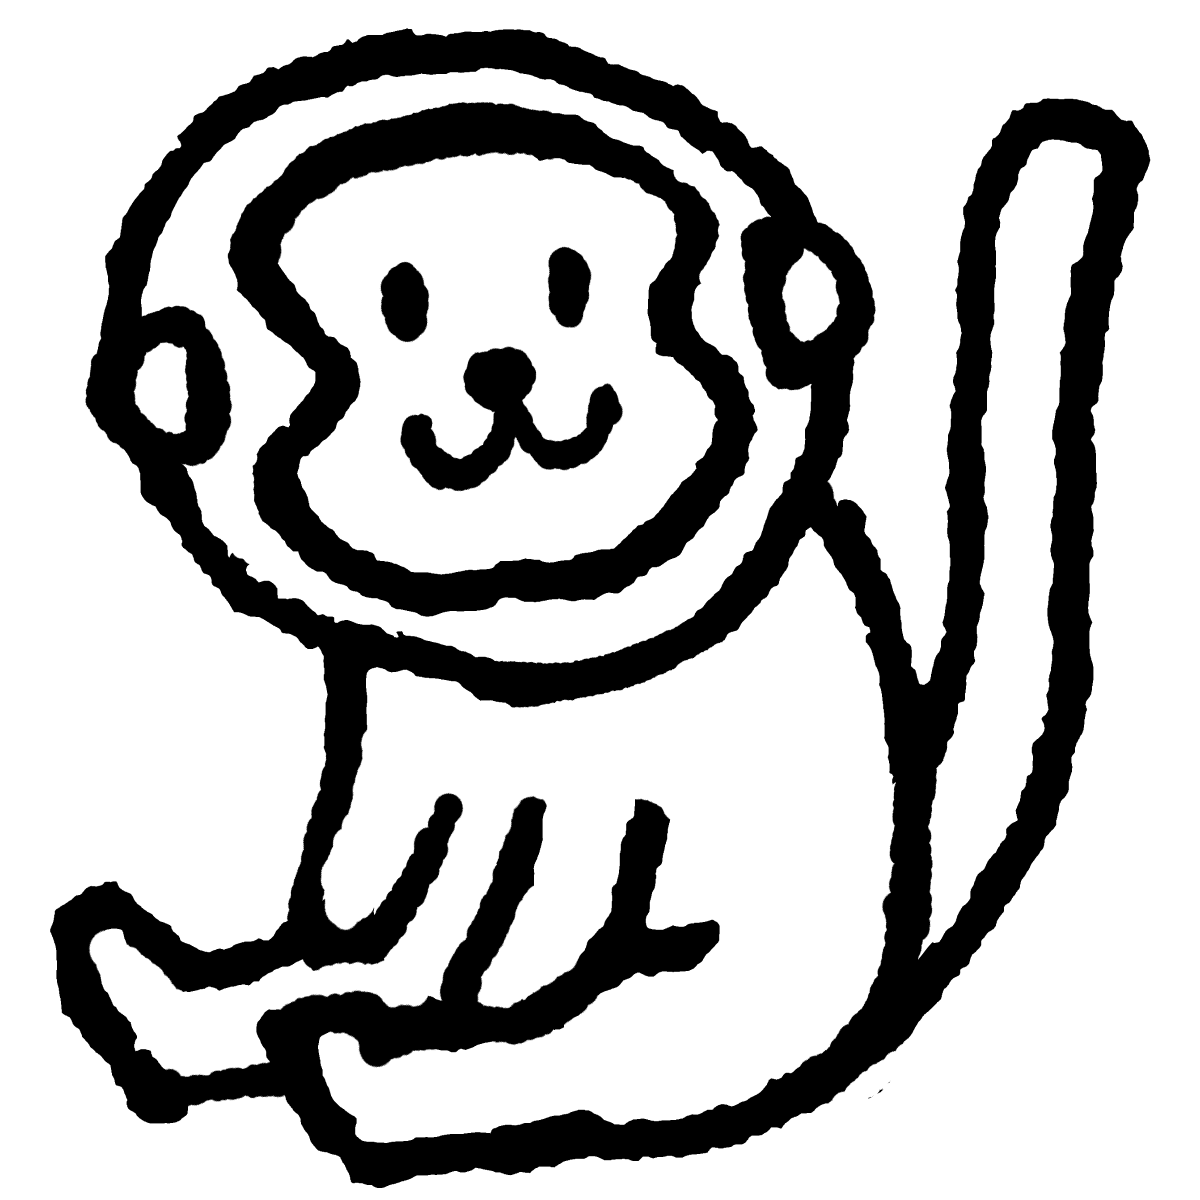 座る猿のイラスト / Sitting monkey Illustration